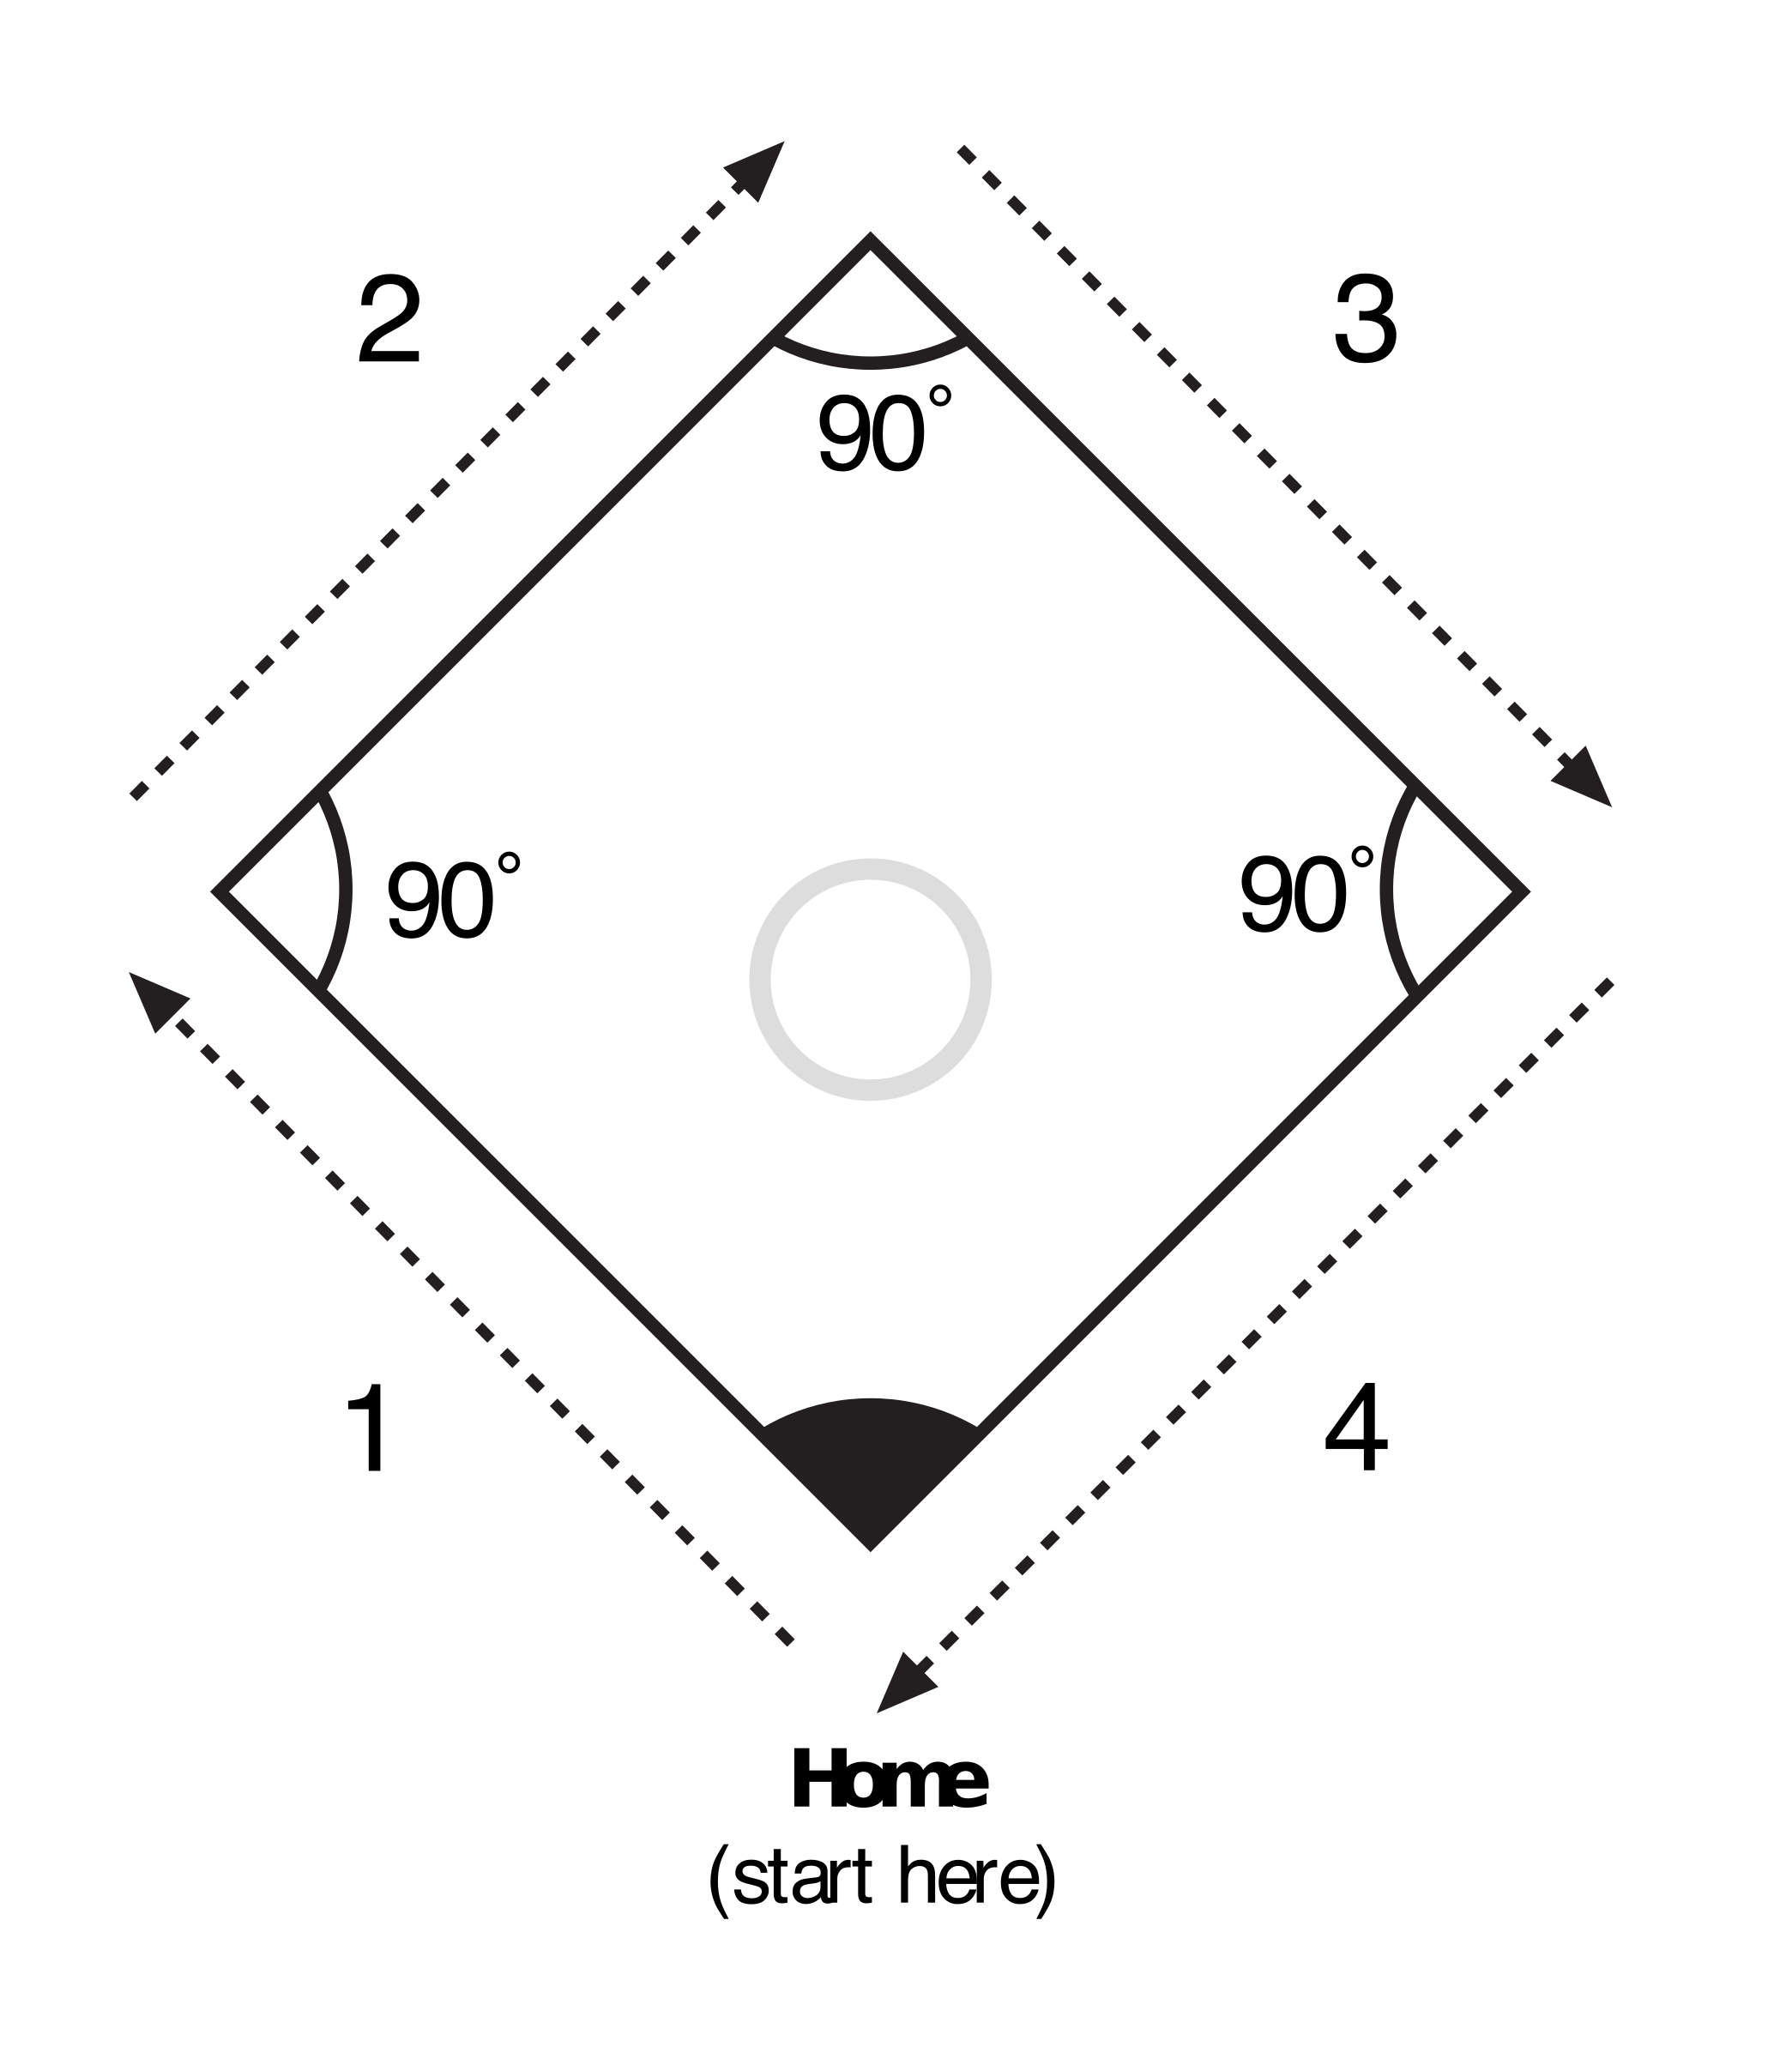 Clipart baseball diamond jpg transparent library Clipart - Navigating Baseball diamond experiment jpg transparent library